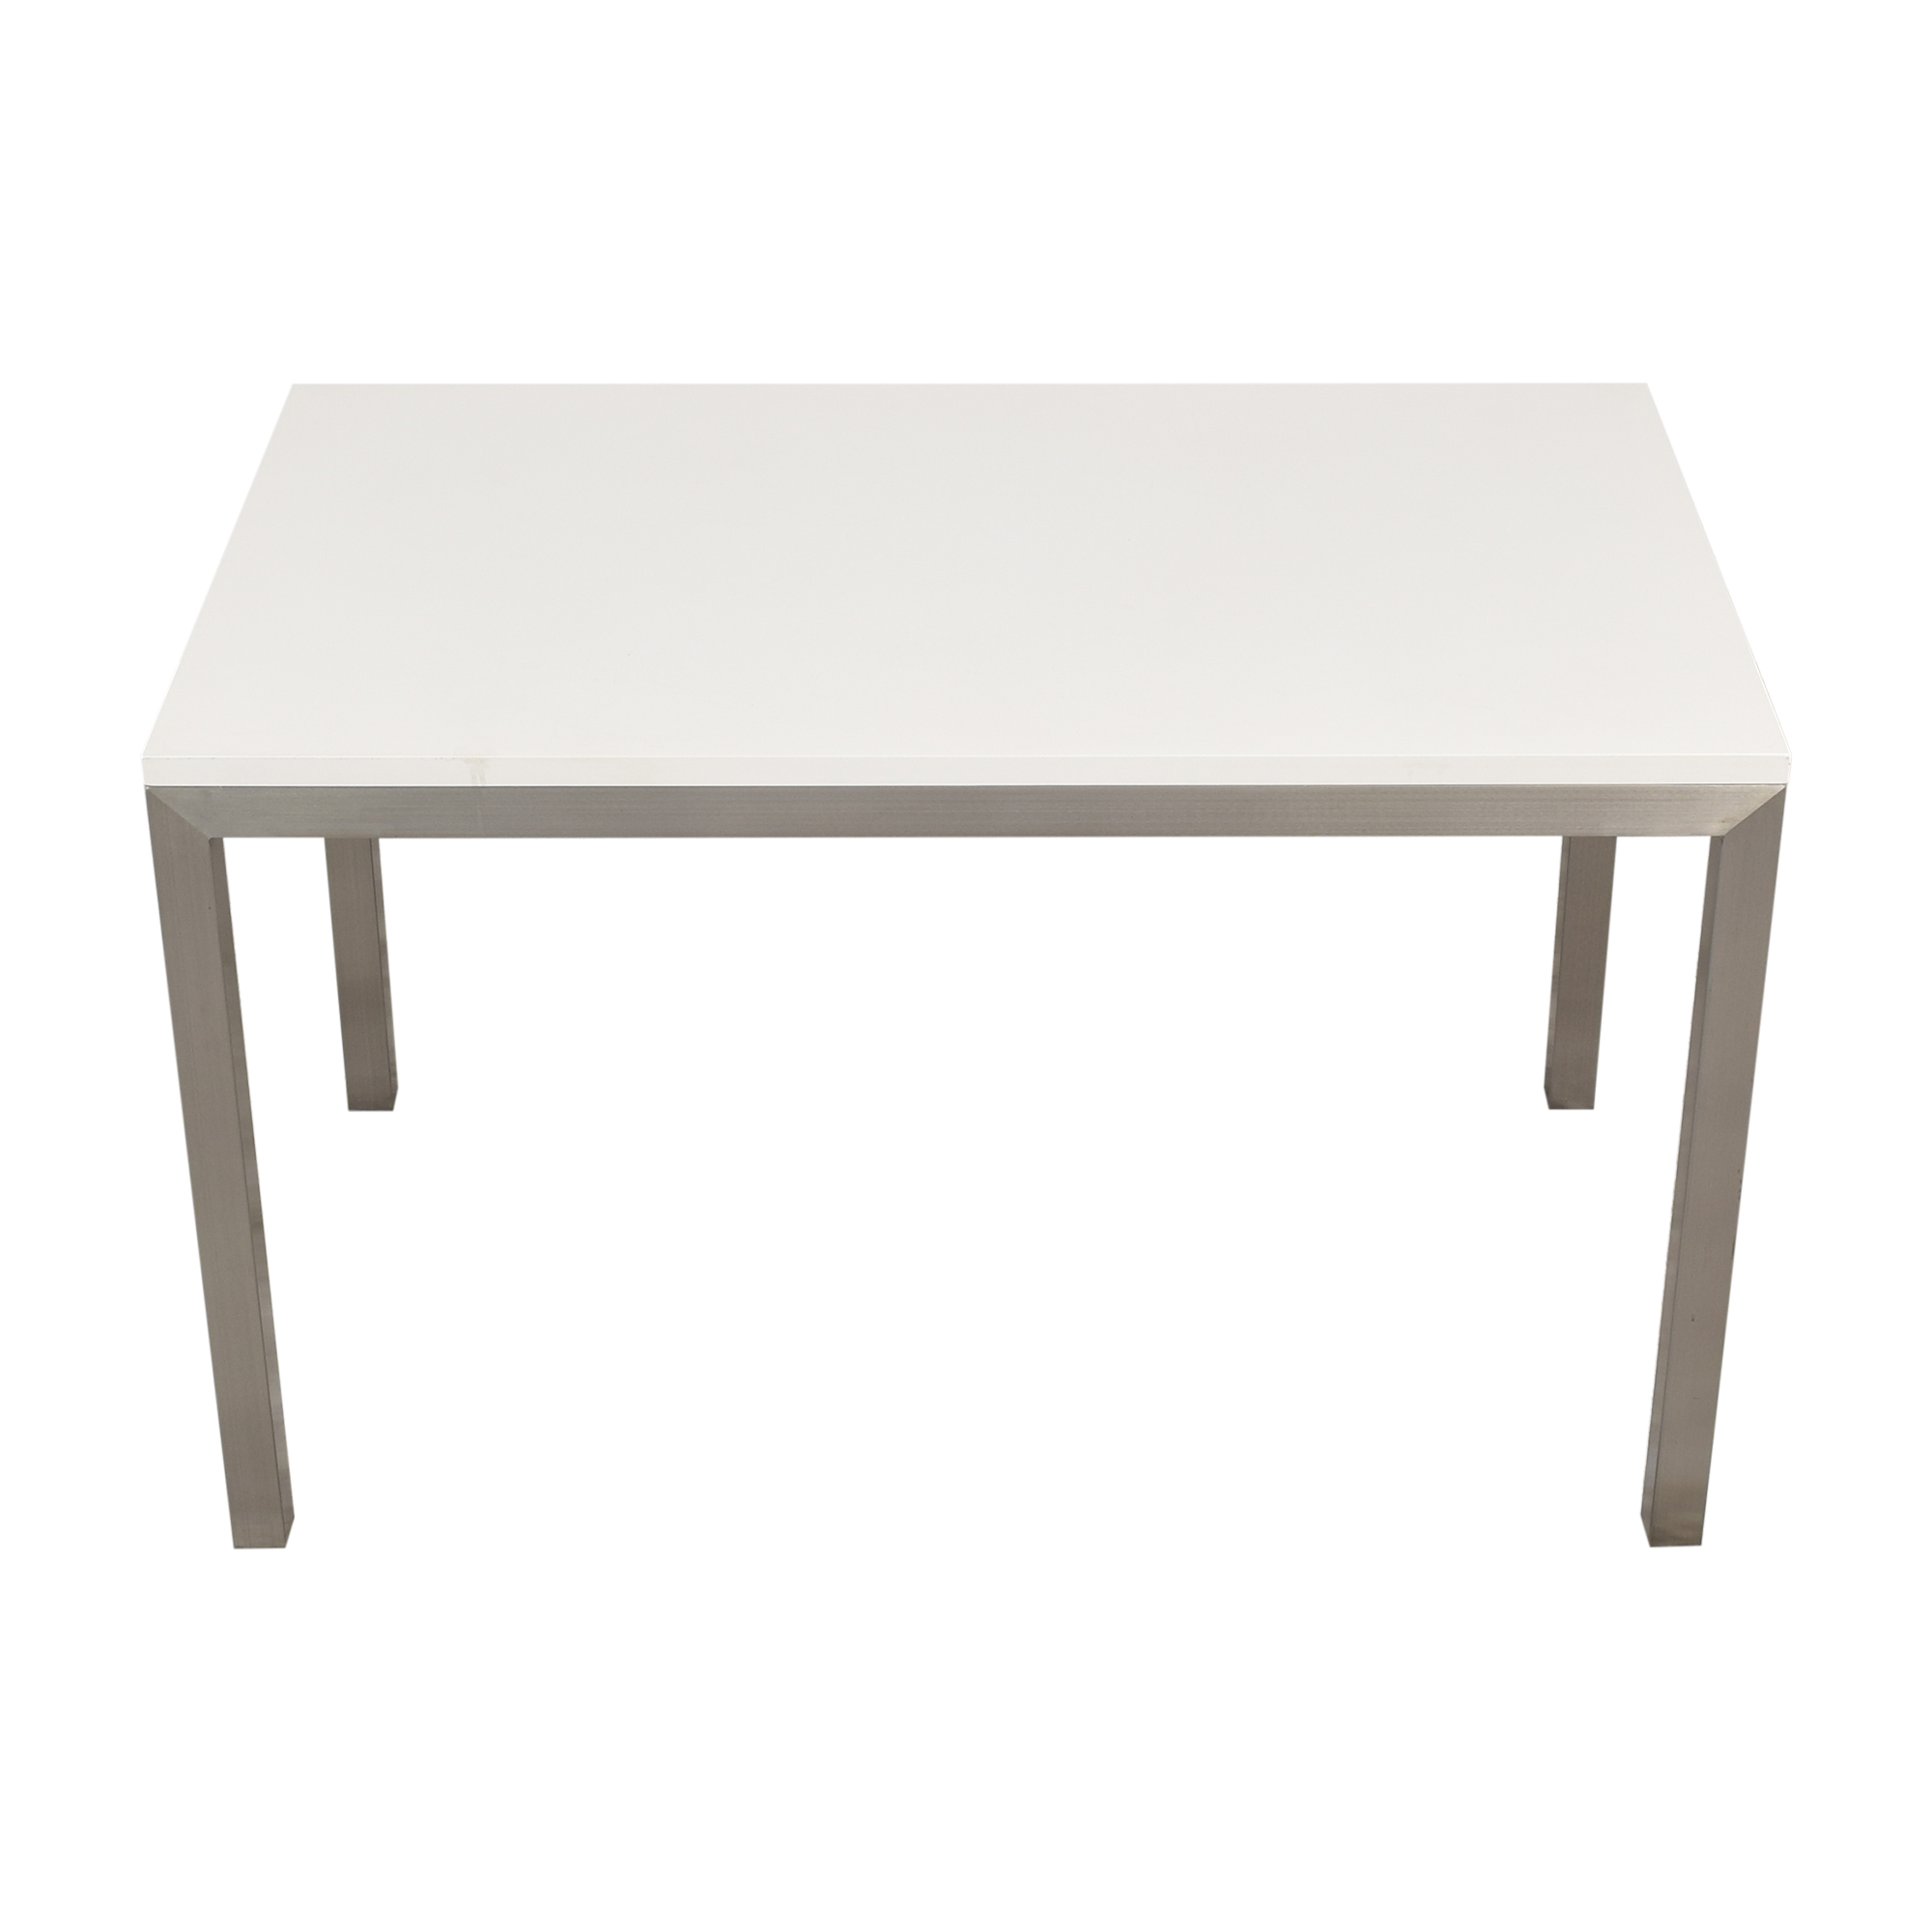 Crate & Barrel Crate & Barrel Parsons Table